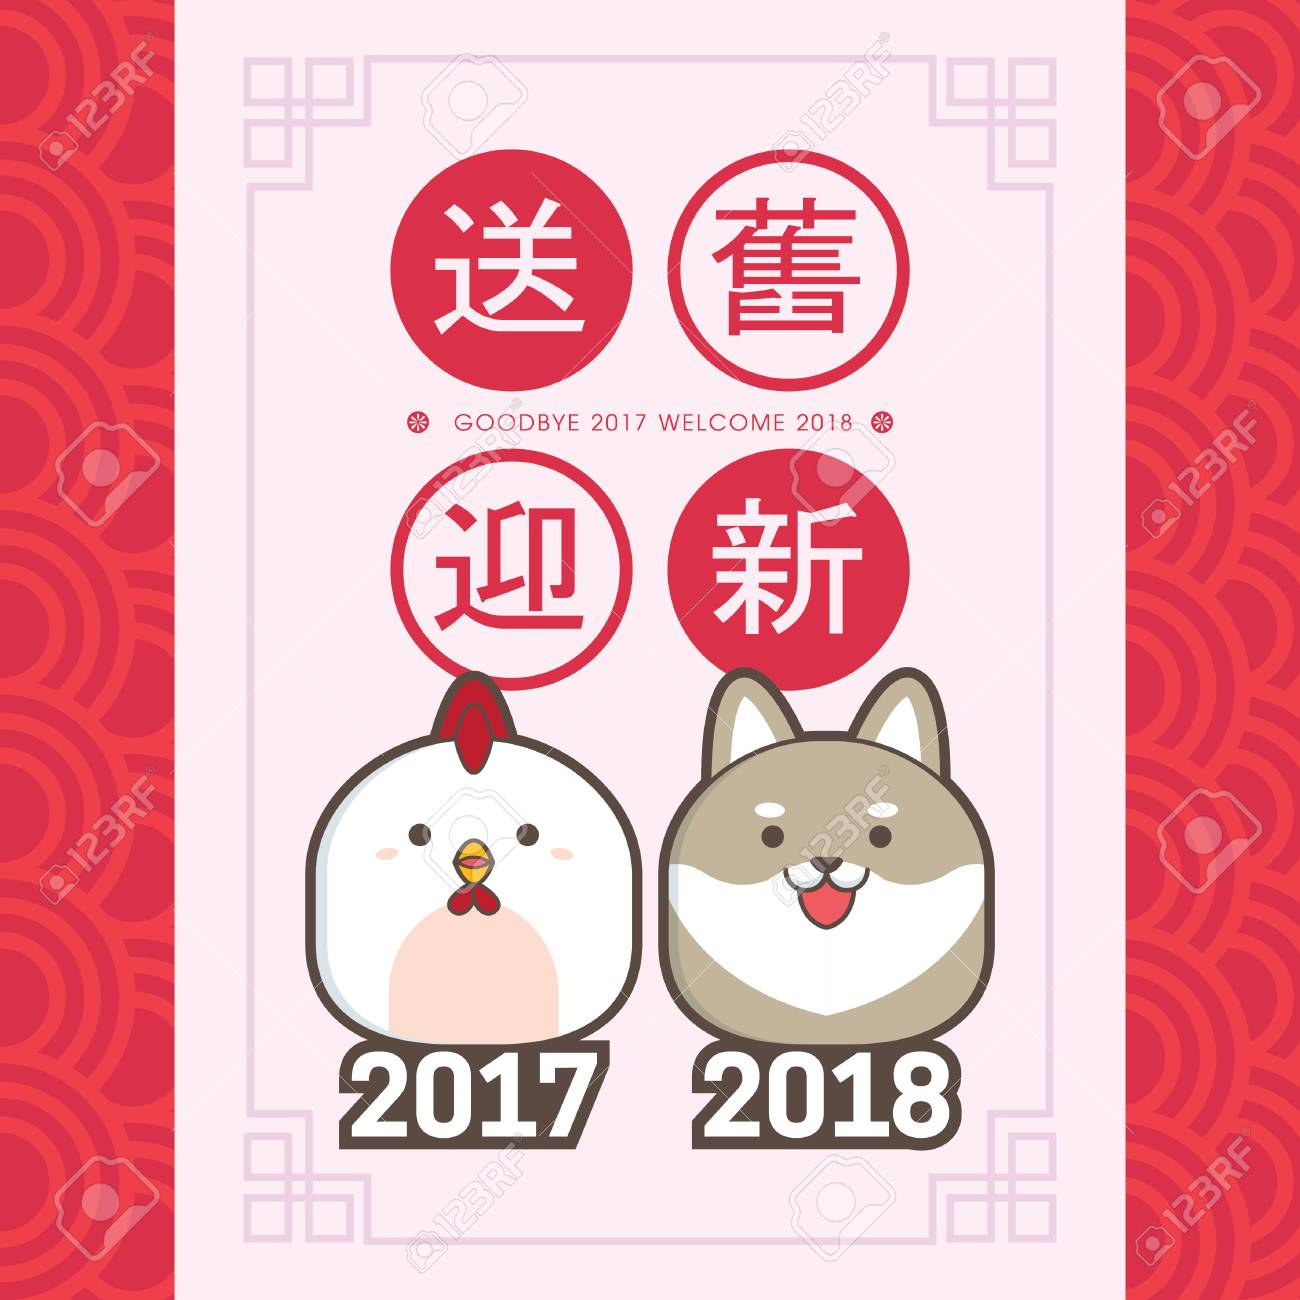 2018 Chinese New Year Greeting Card Template With Cute Chicken